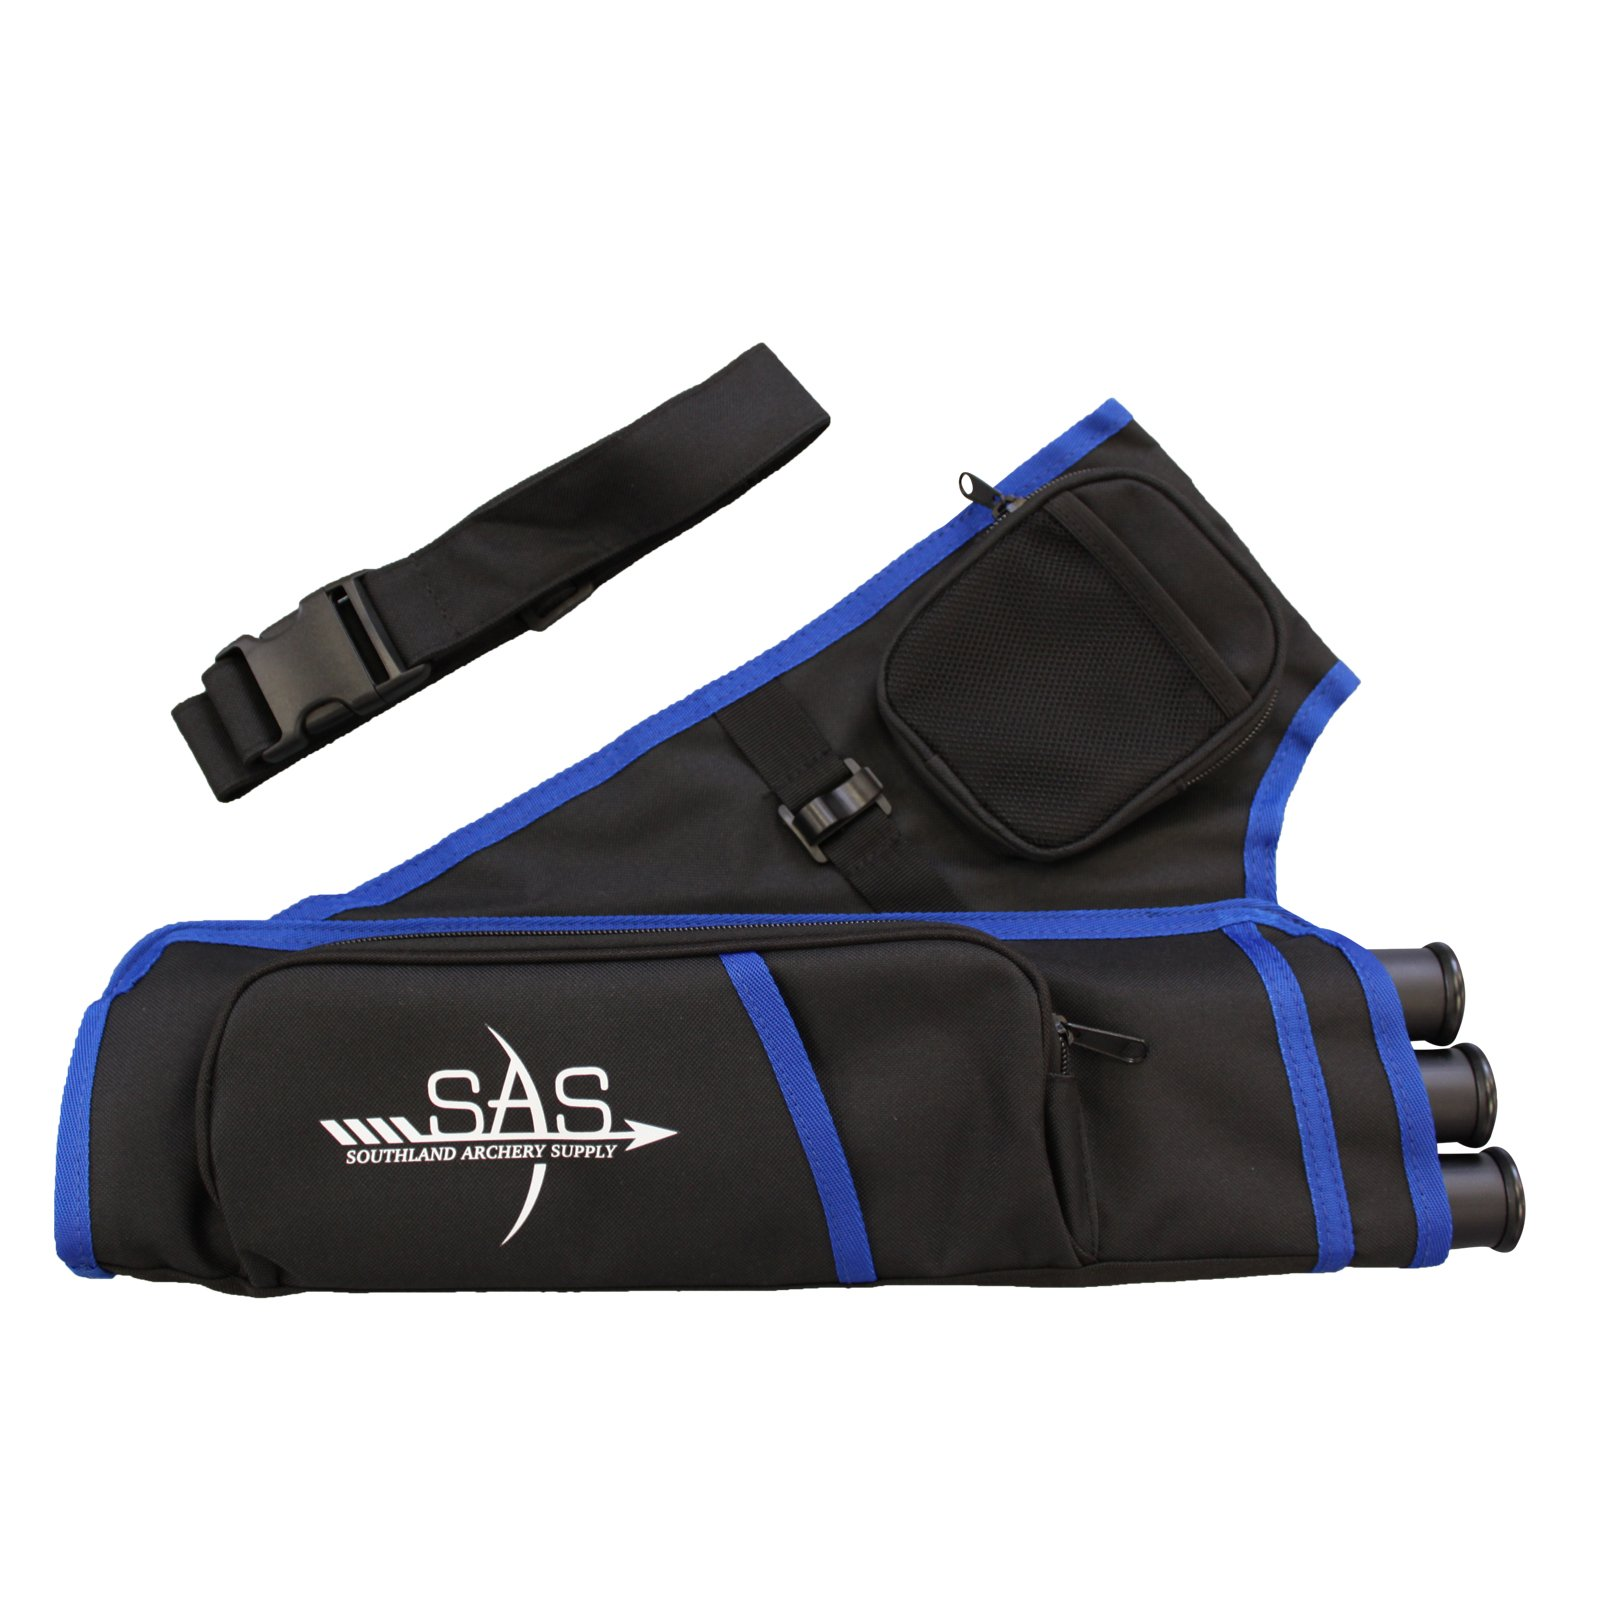 Southland Archery Supply SAS 3 Tube Target Quiver (Blue)